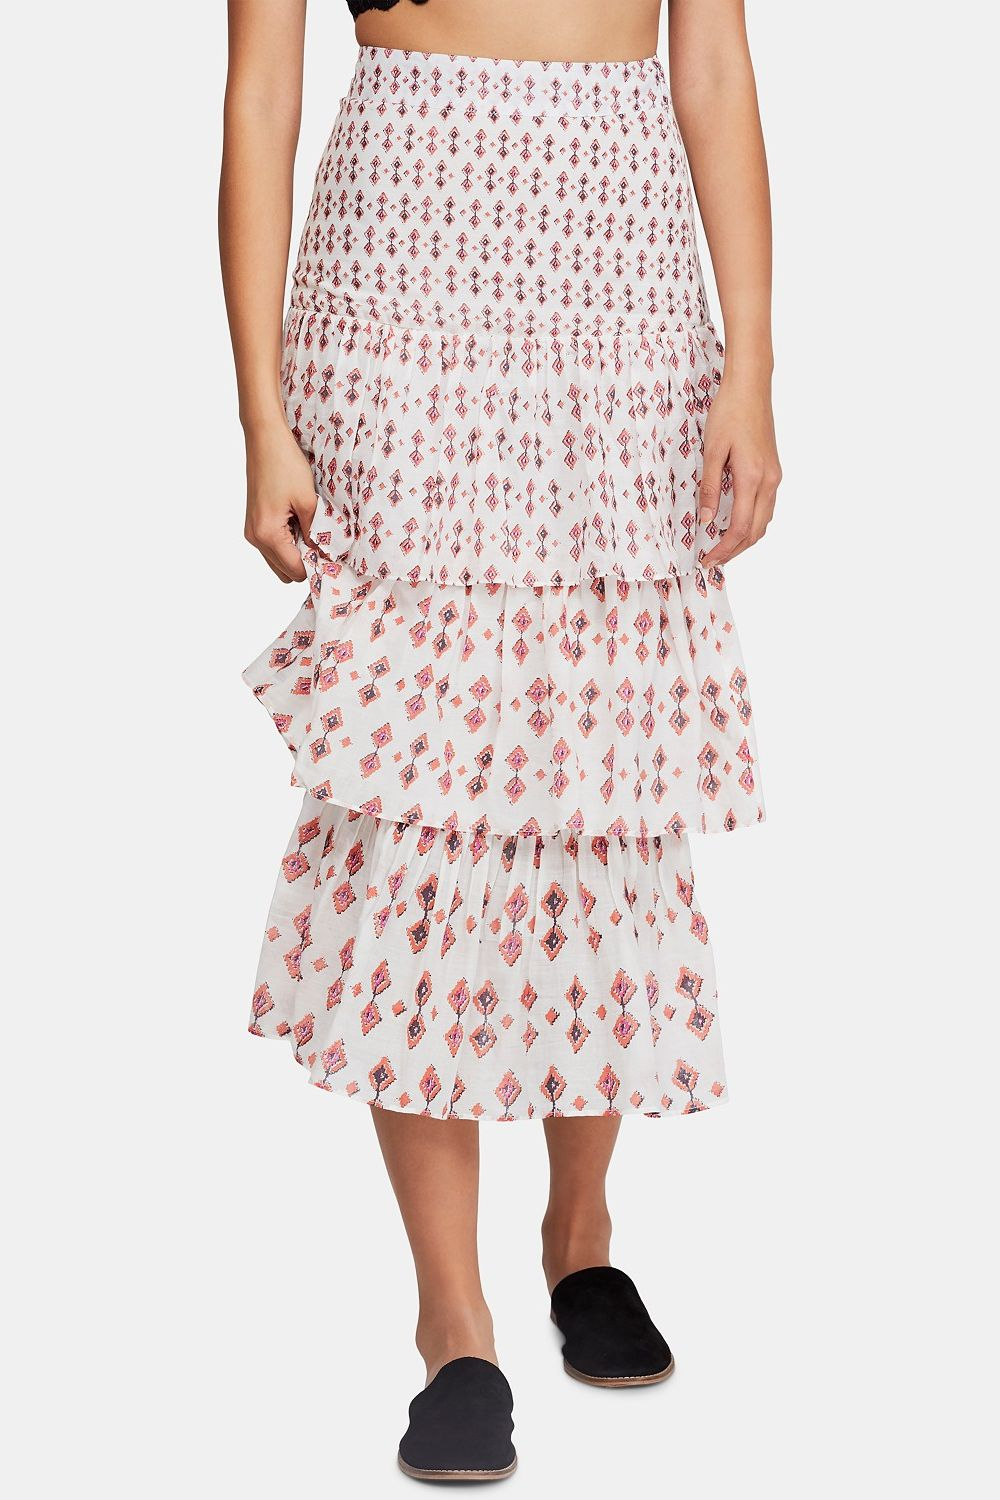 Free People Cha Cha Tiered Midi Skirt